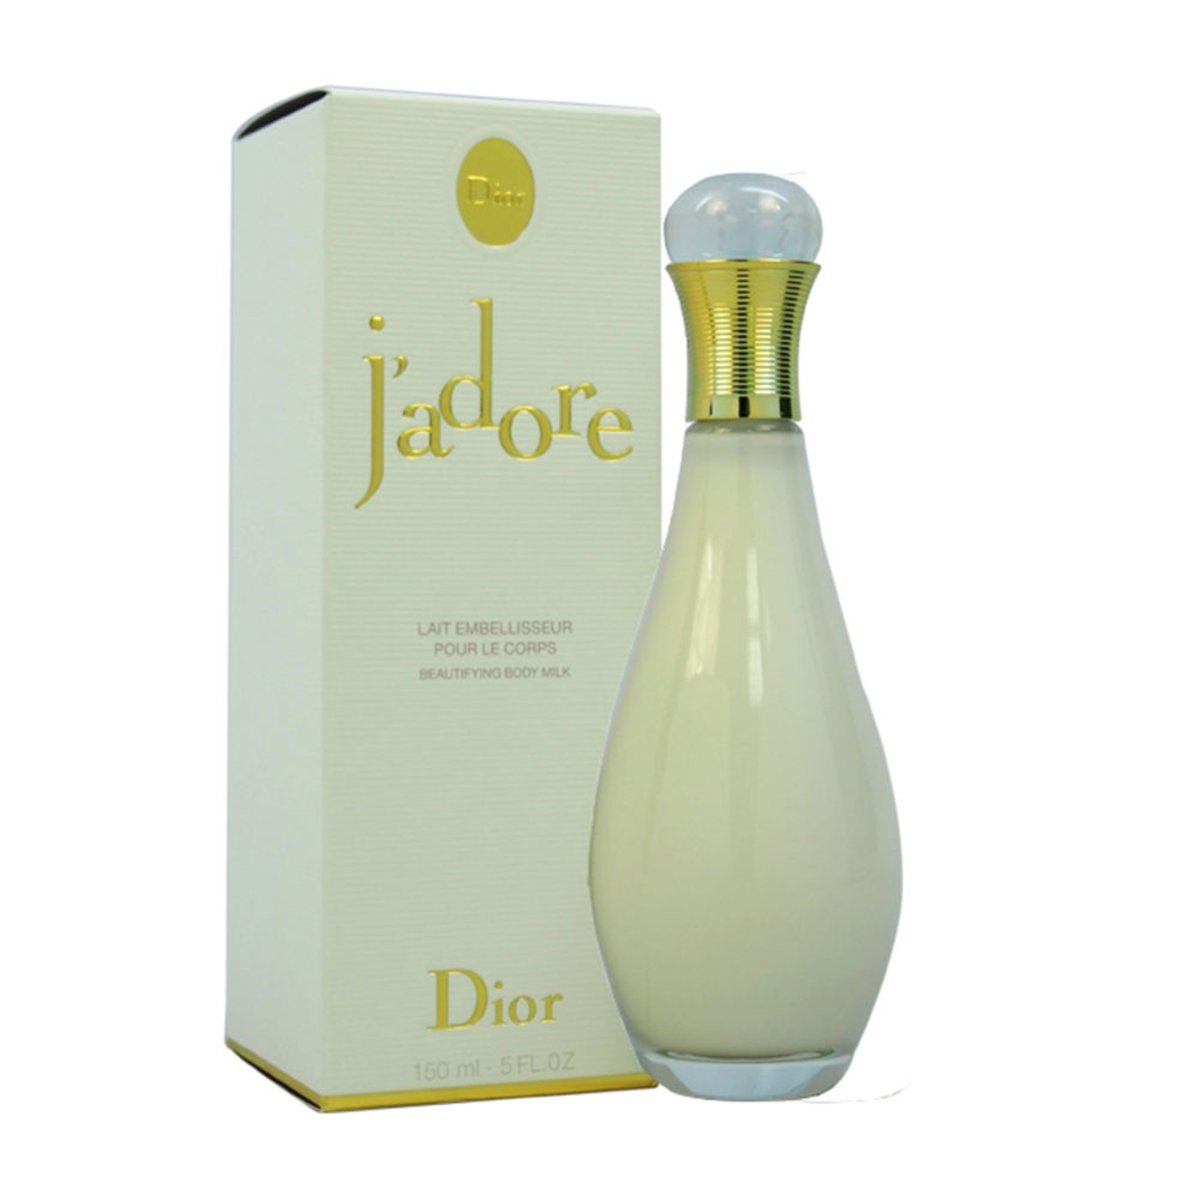 J'adore Beautifying Body Milk 150ml [Parallel Import]